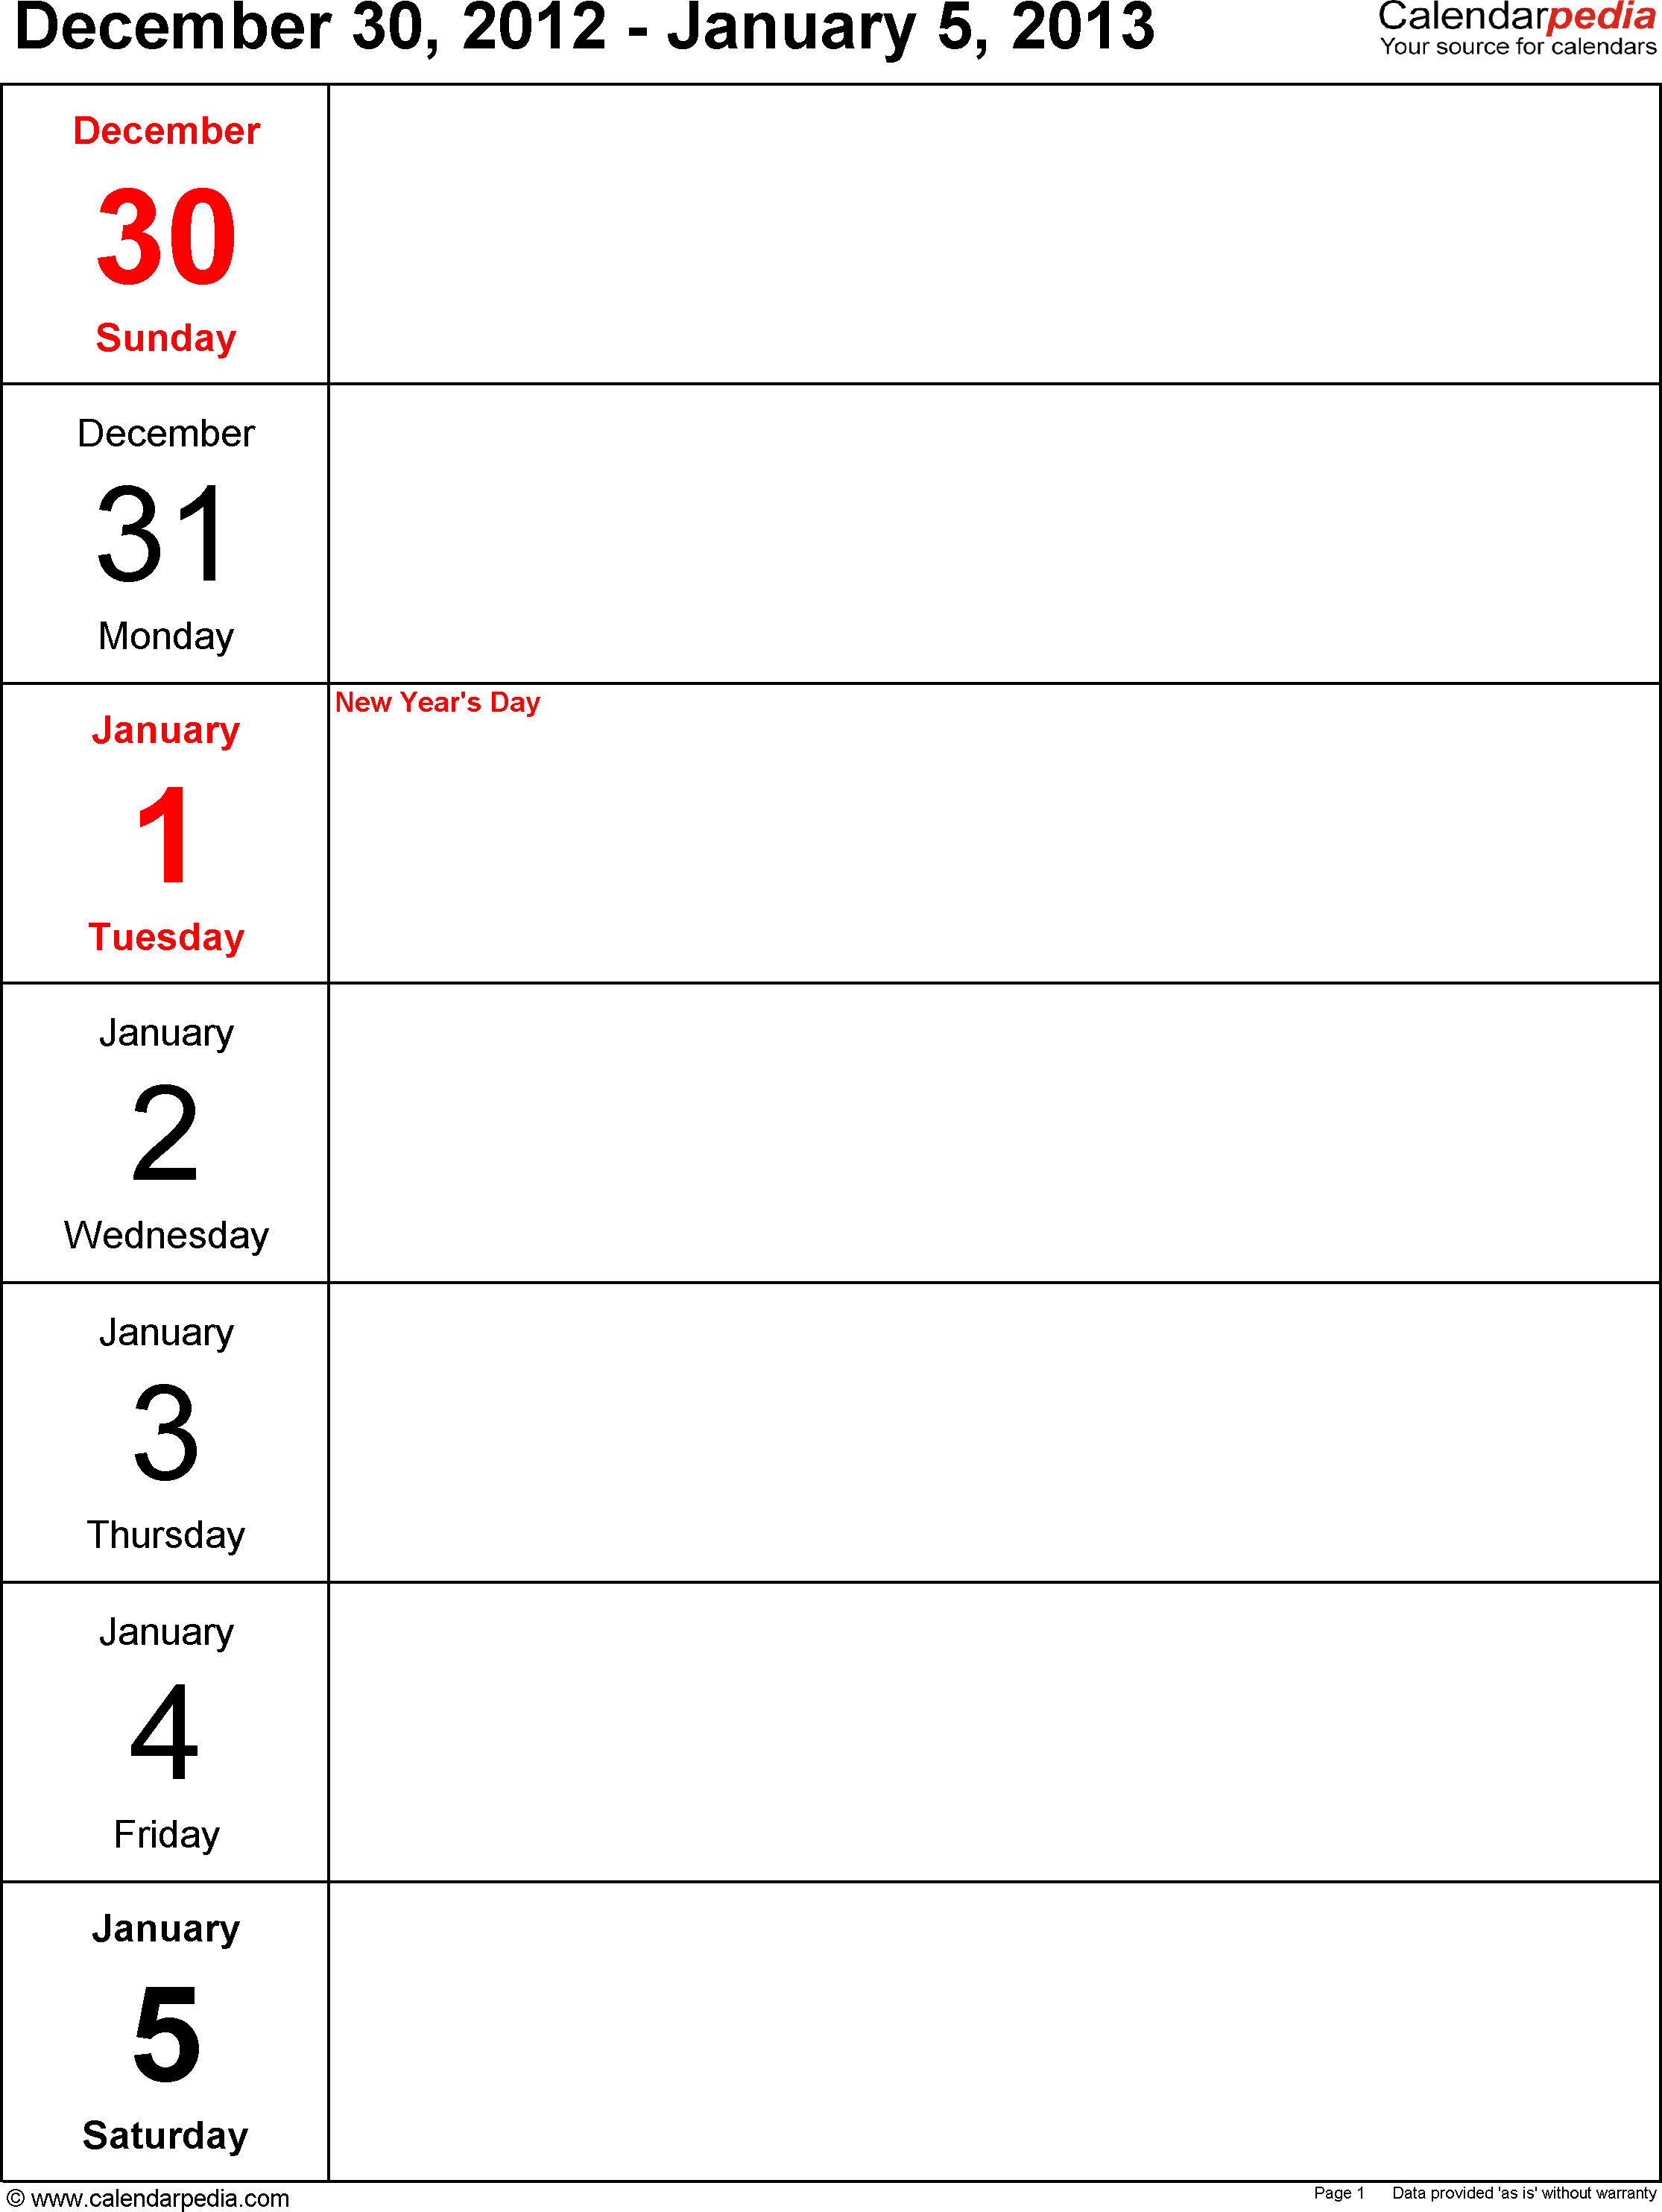 Weekly calendar 2013: template for Word version 4, portrait, 53 pages, days vertically, great for a weekly diary